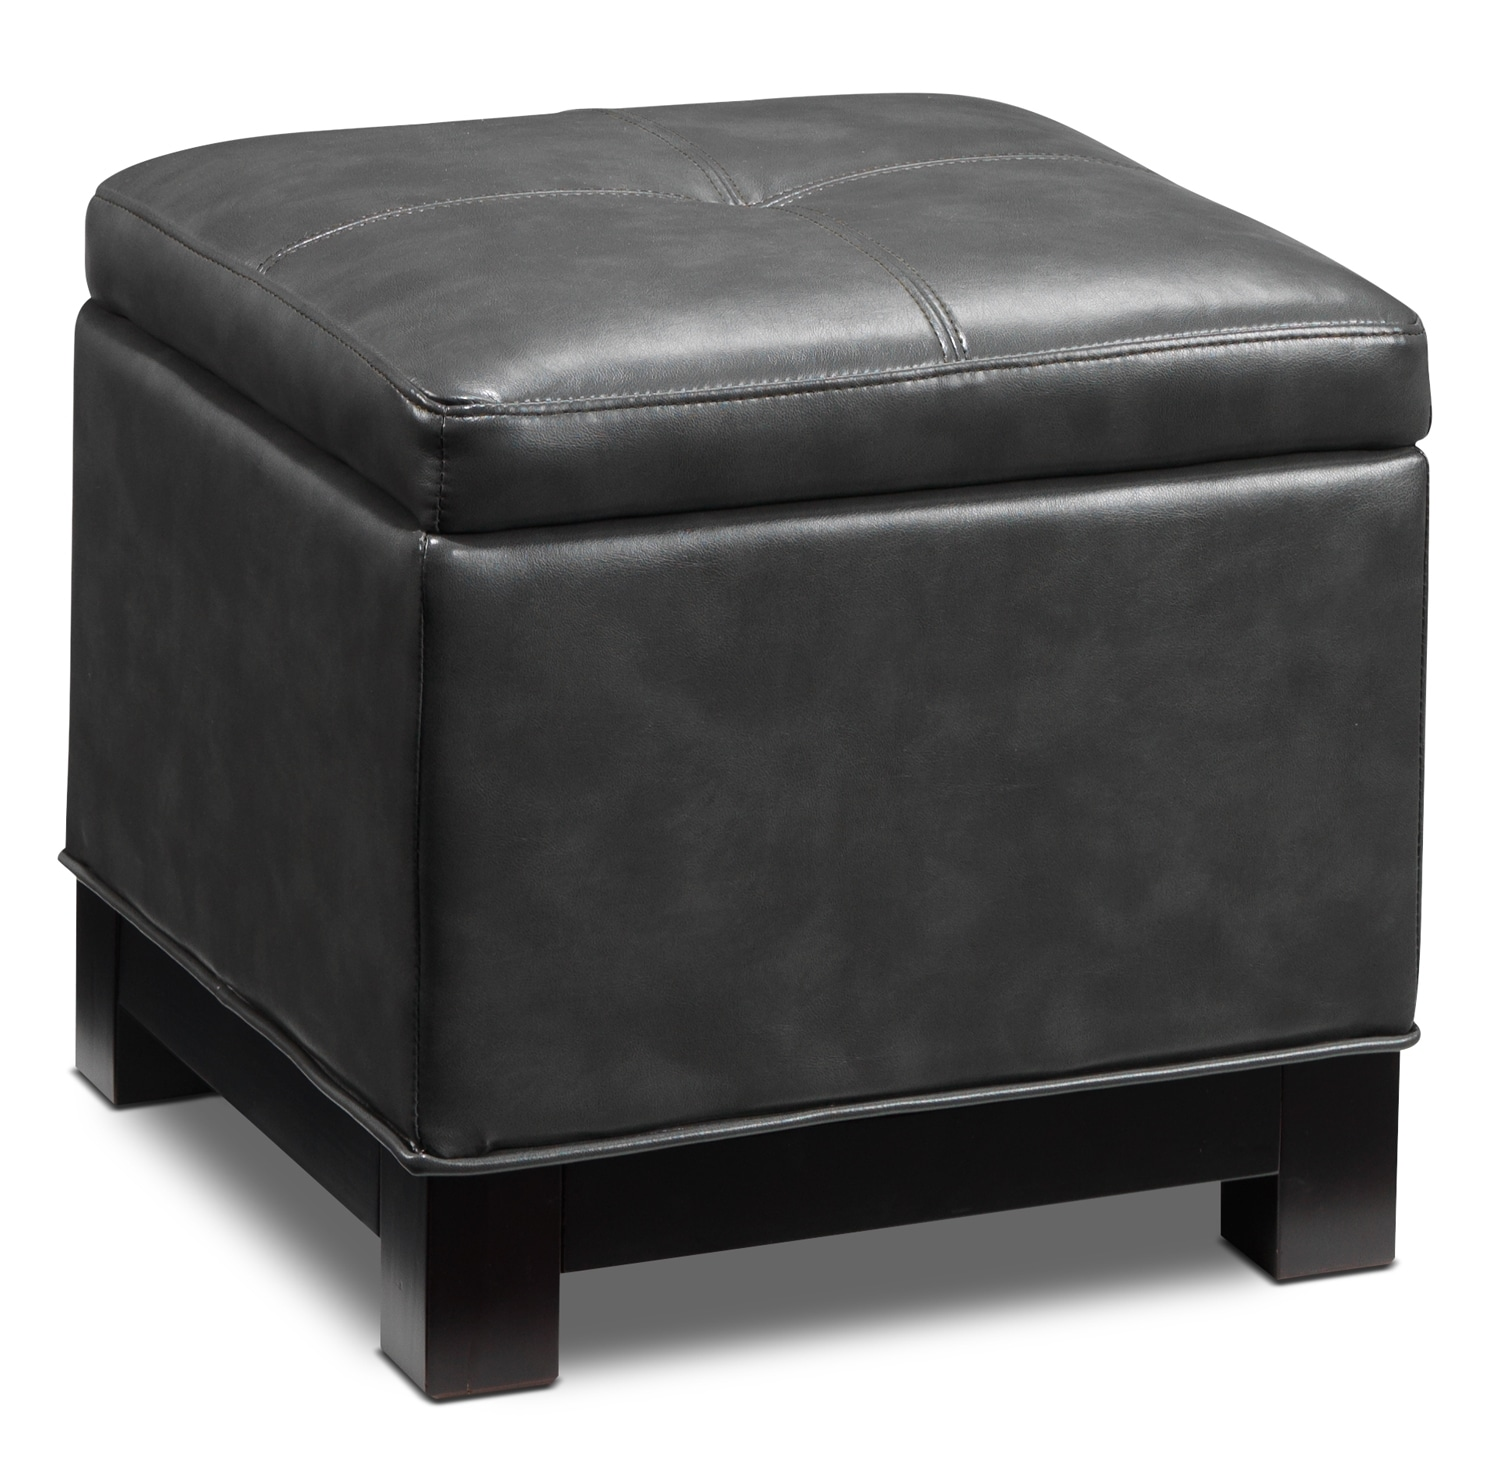 atlanta storage ottoman grey leon 39 s. Black Bedroom Furniture Sets. Home Design Ideas